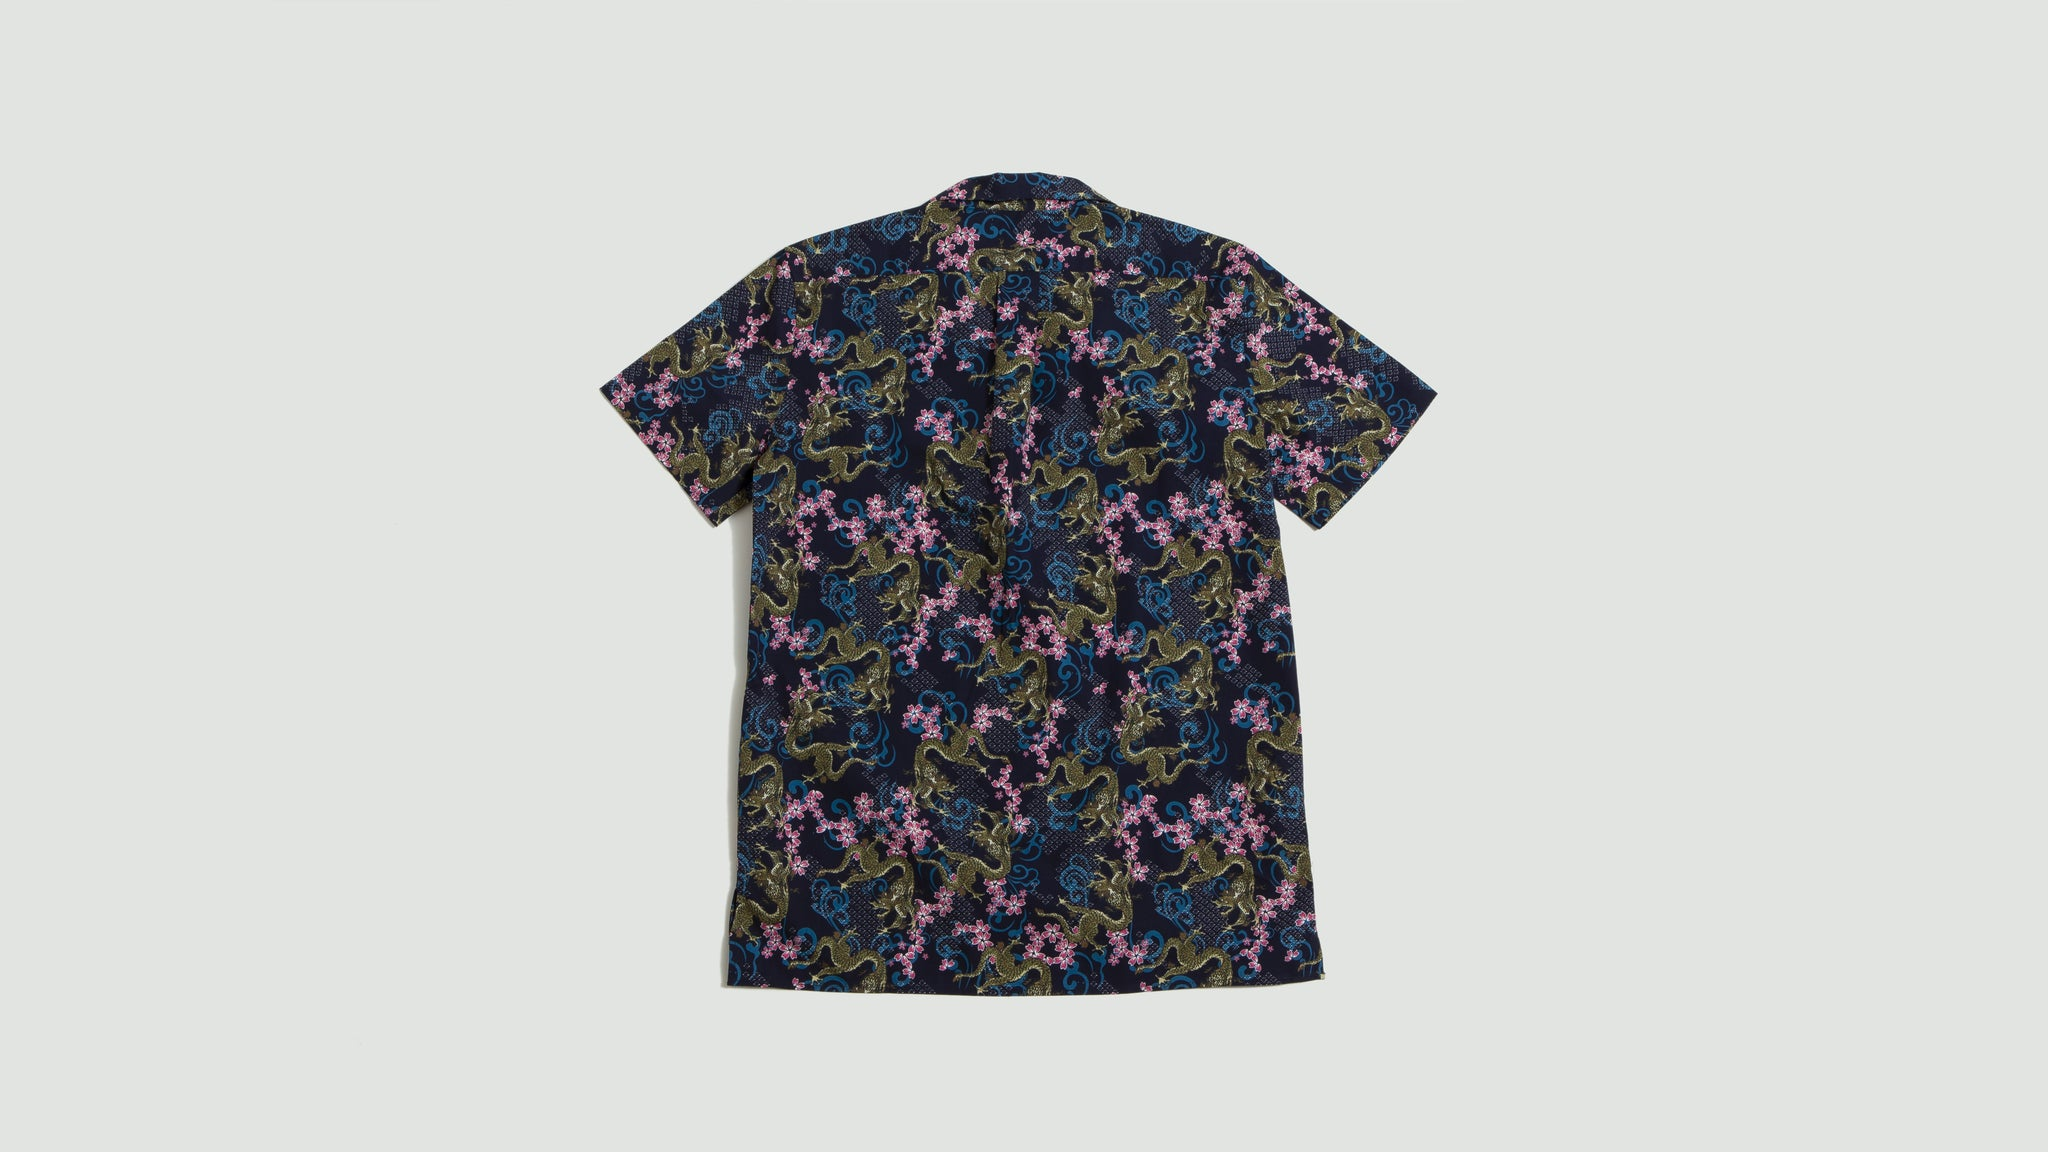 Libertine Libertine. Cave S/S shirt navy dragon